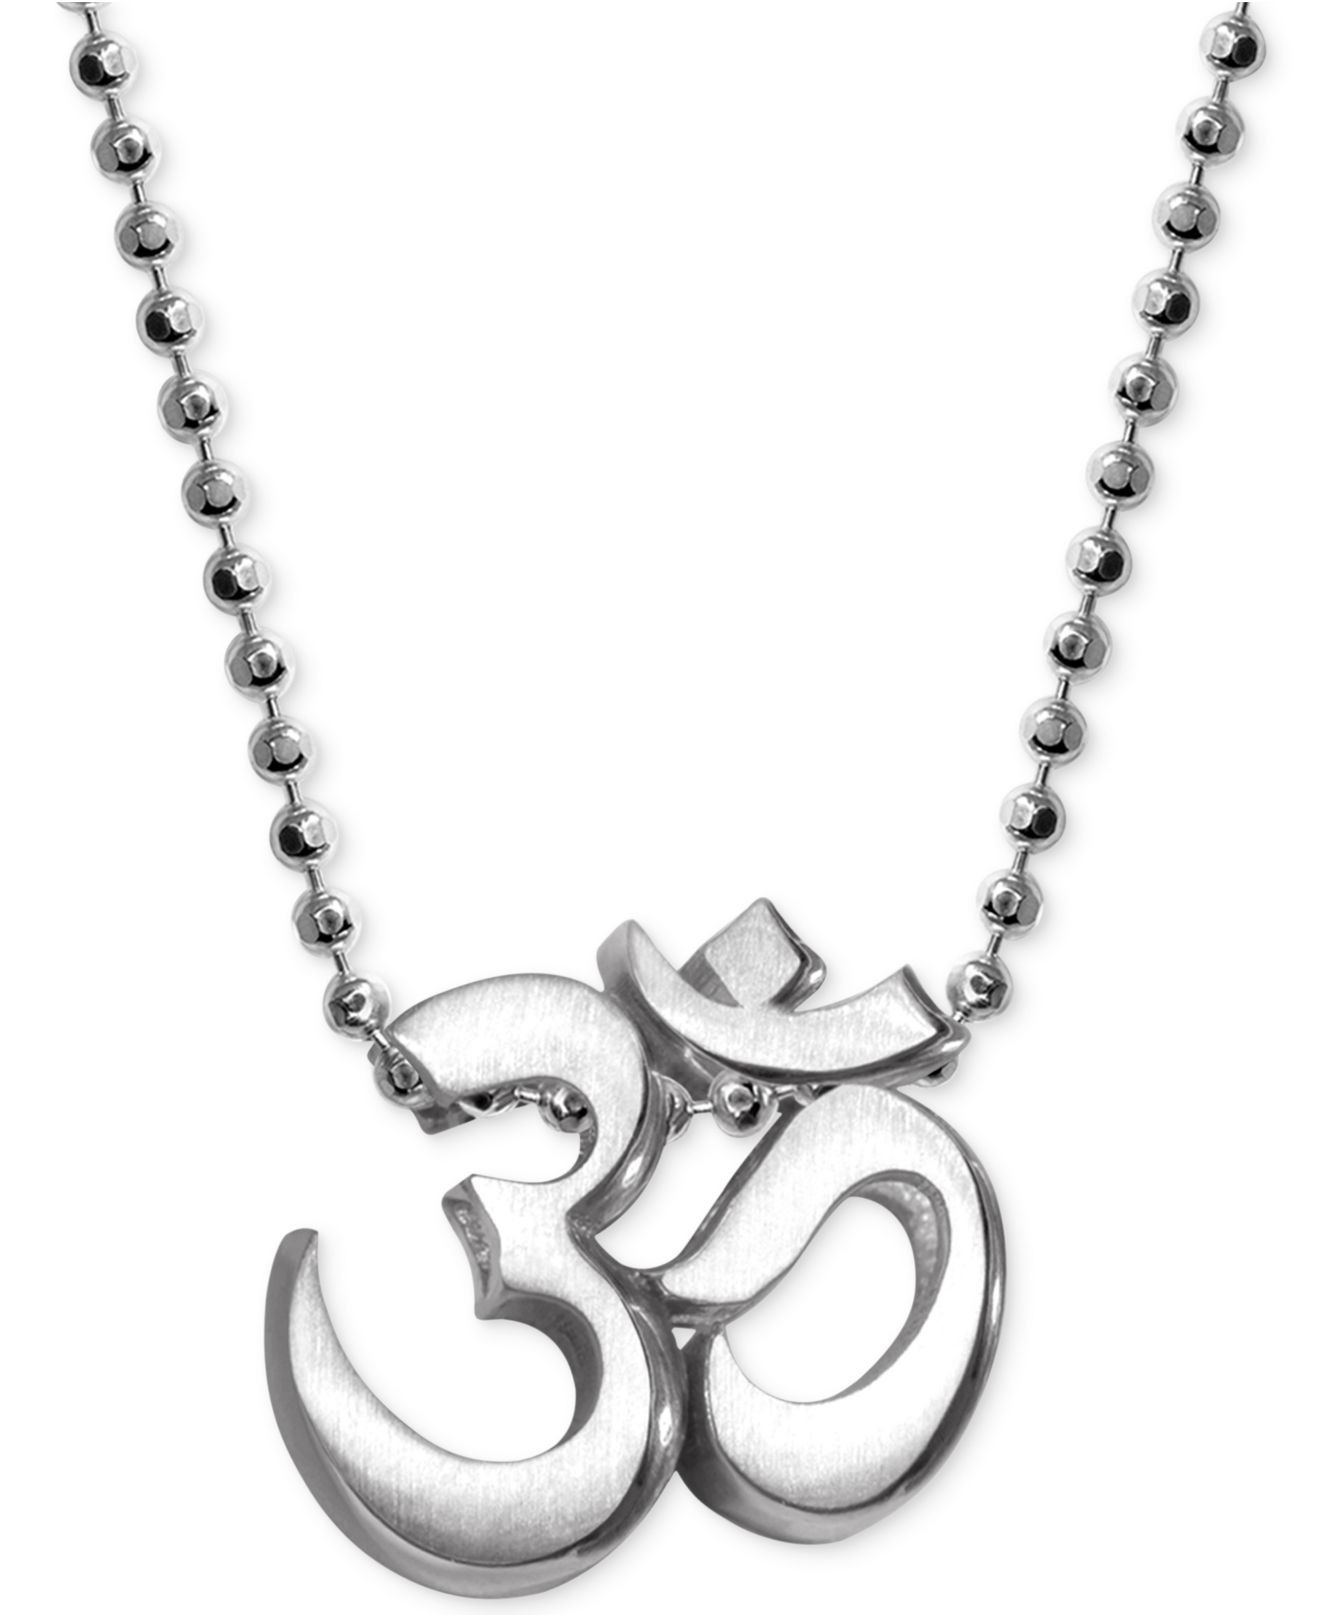 alex woo faith om pendant necklace in sterling